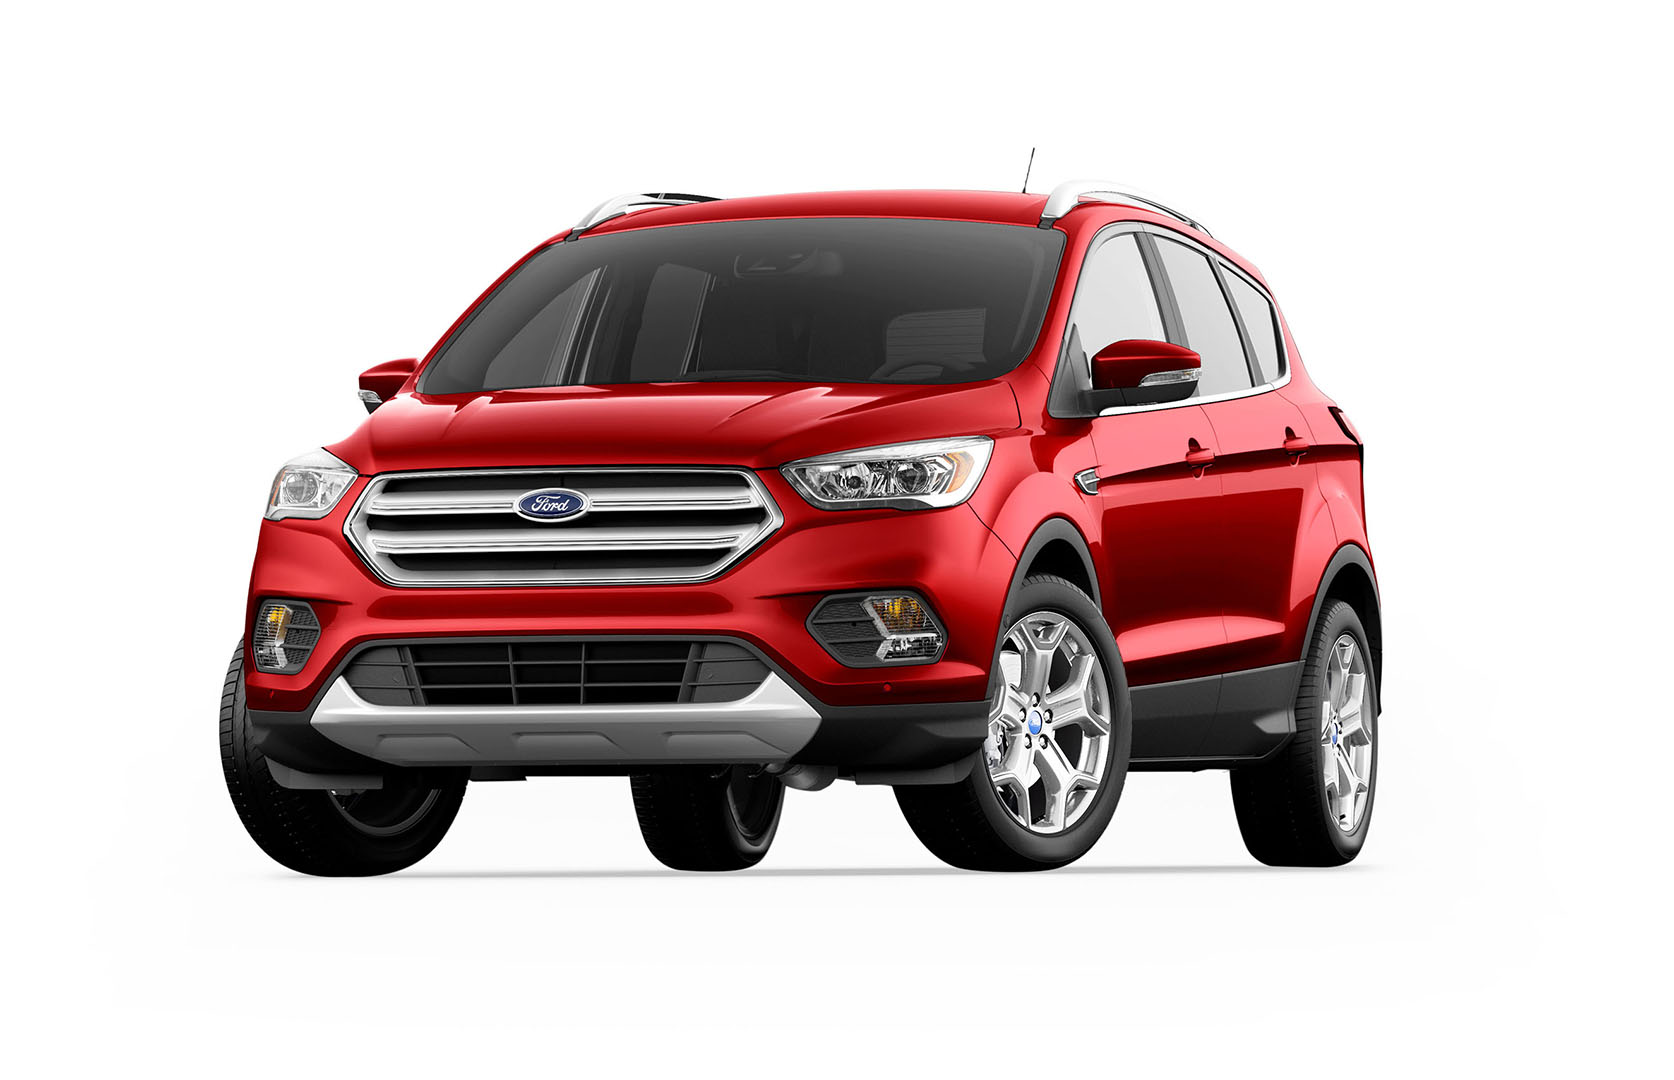 red compact ford escape